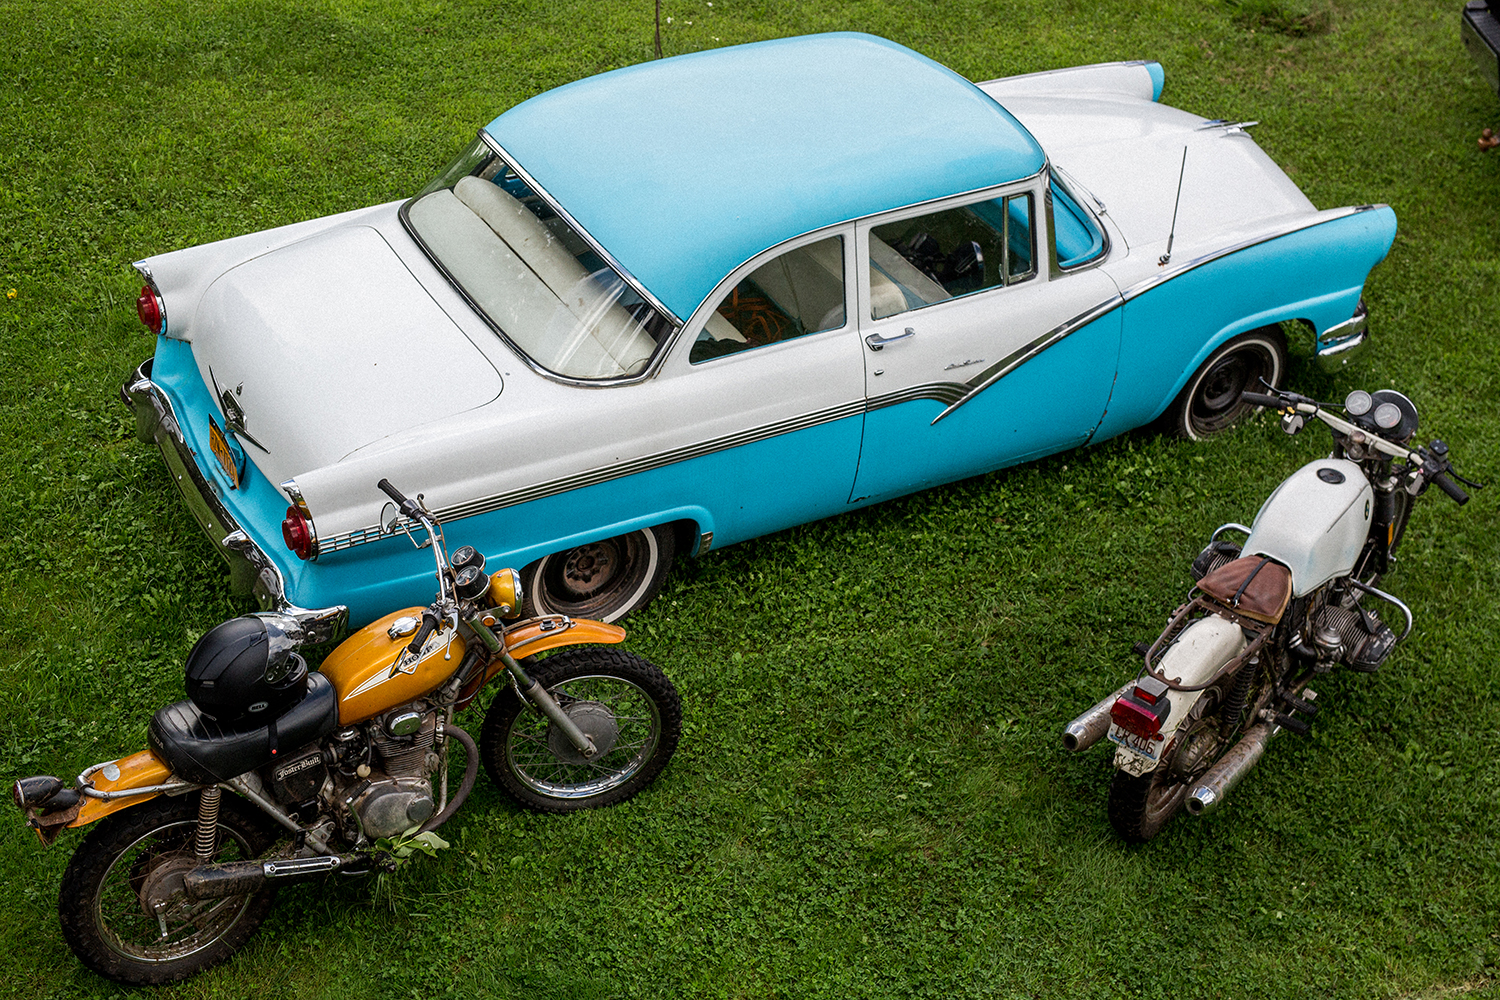 Mark Foster has vintage cars and motorcycles